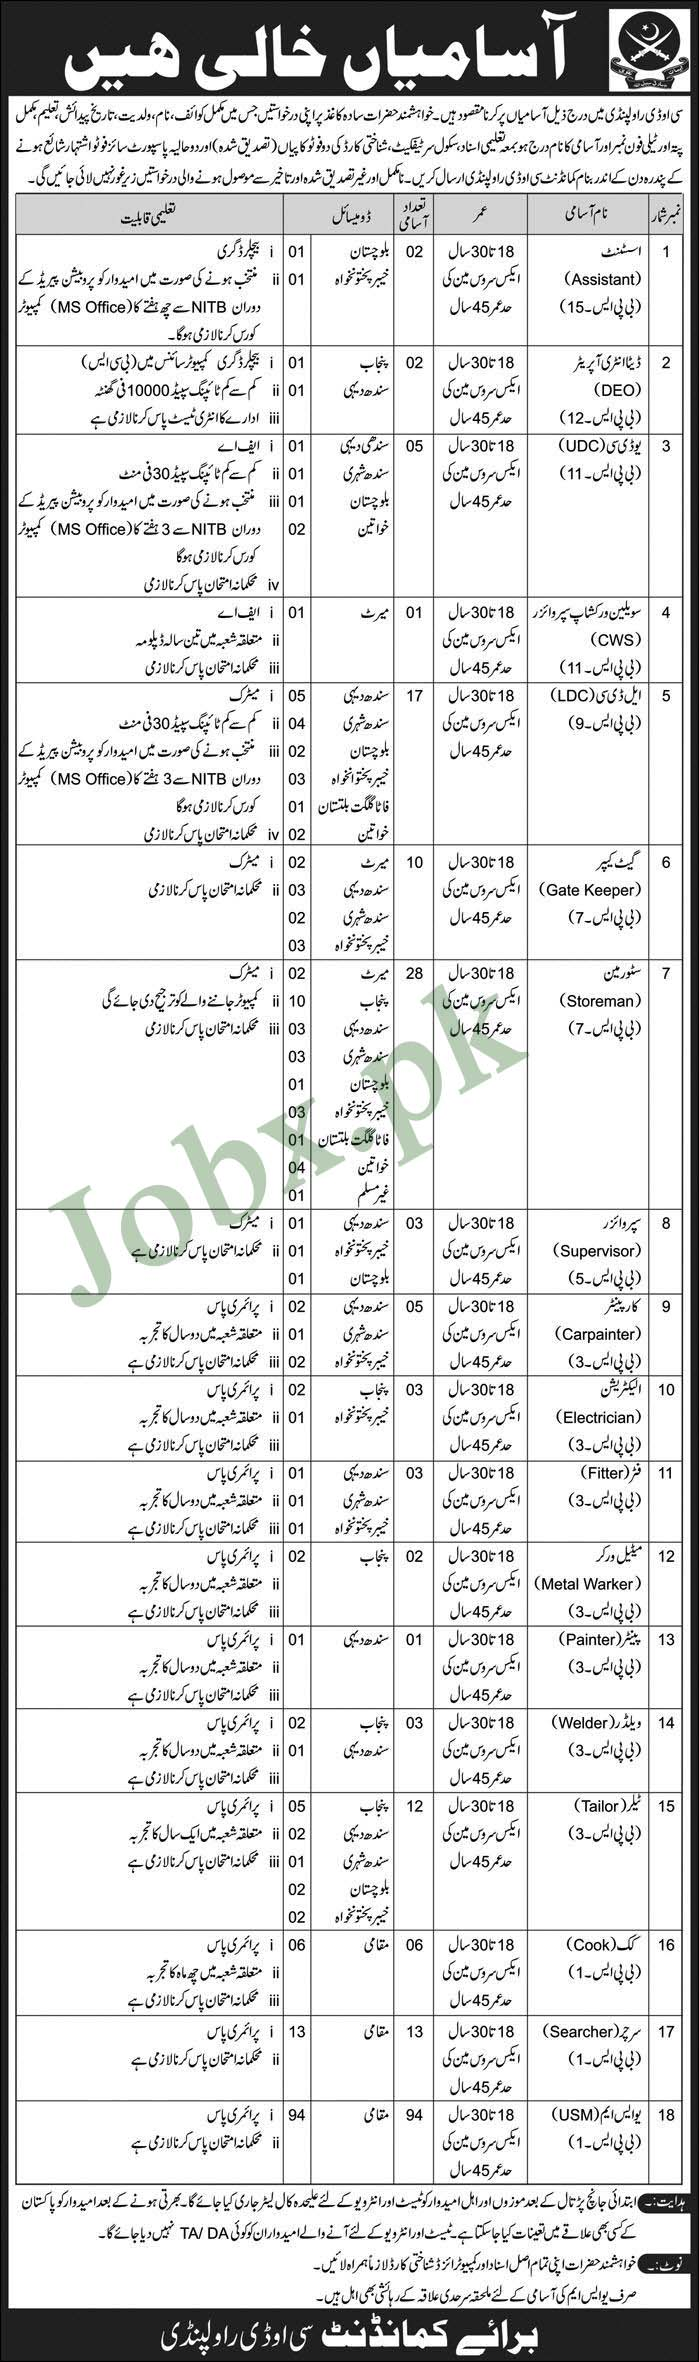 Jobs in COD Rawalpindi for All Pakistan 10 Feb 2019